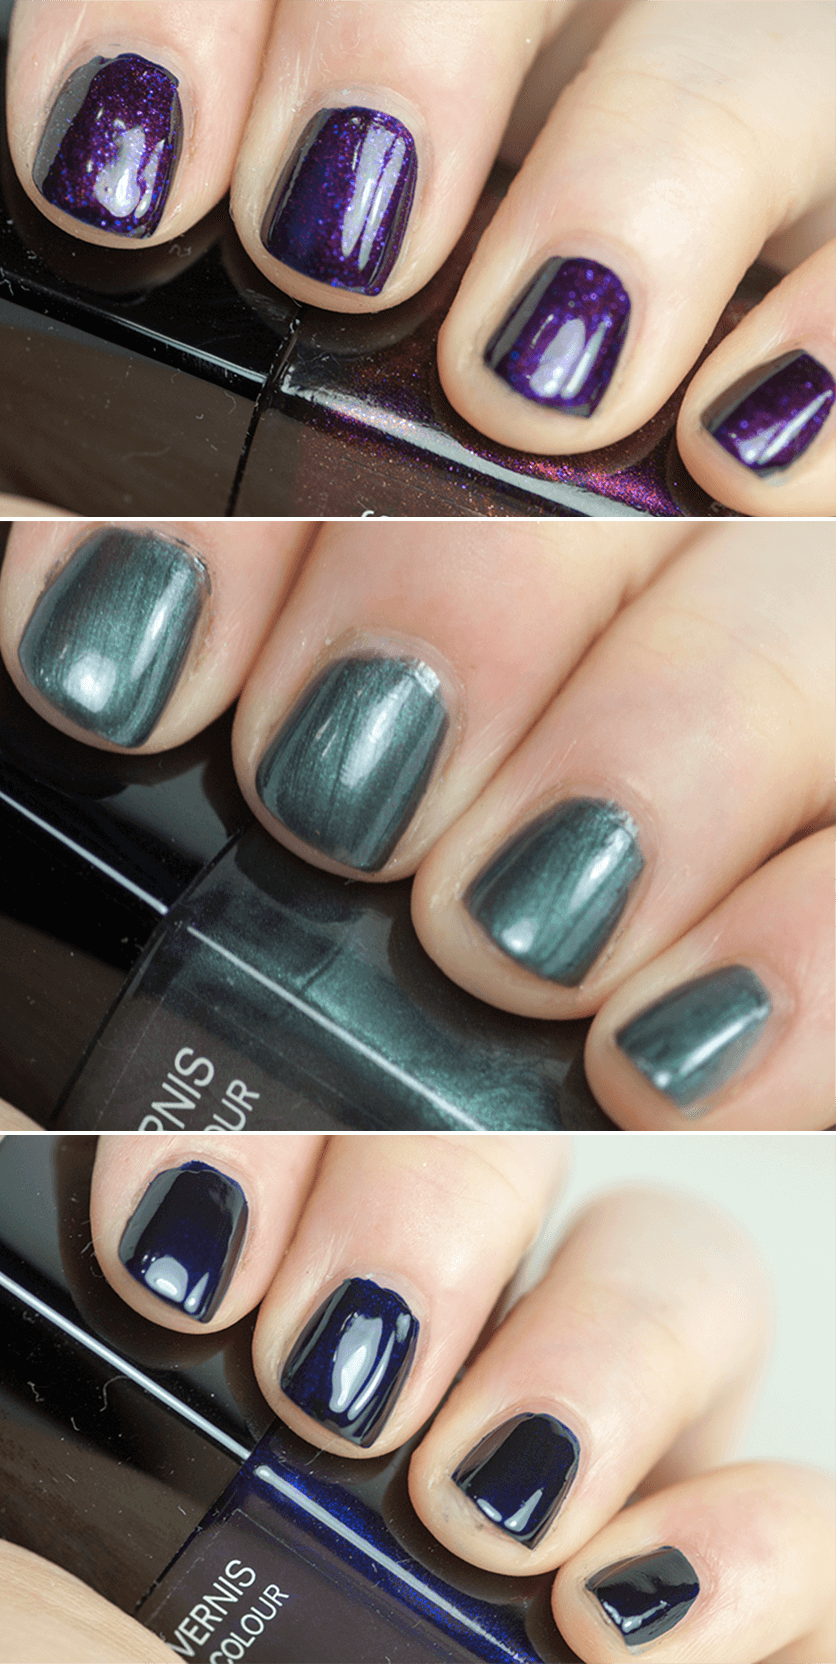 chanel-nail-polish-taboo-black-pearl-blue-satin-swatches